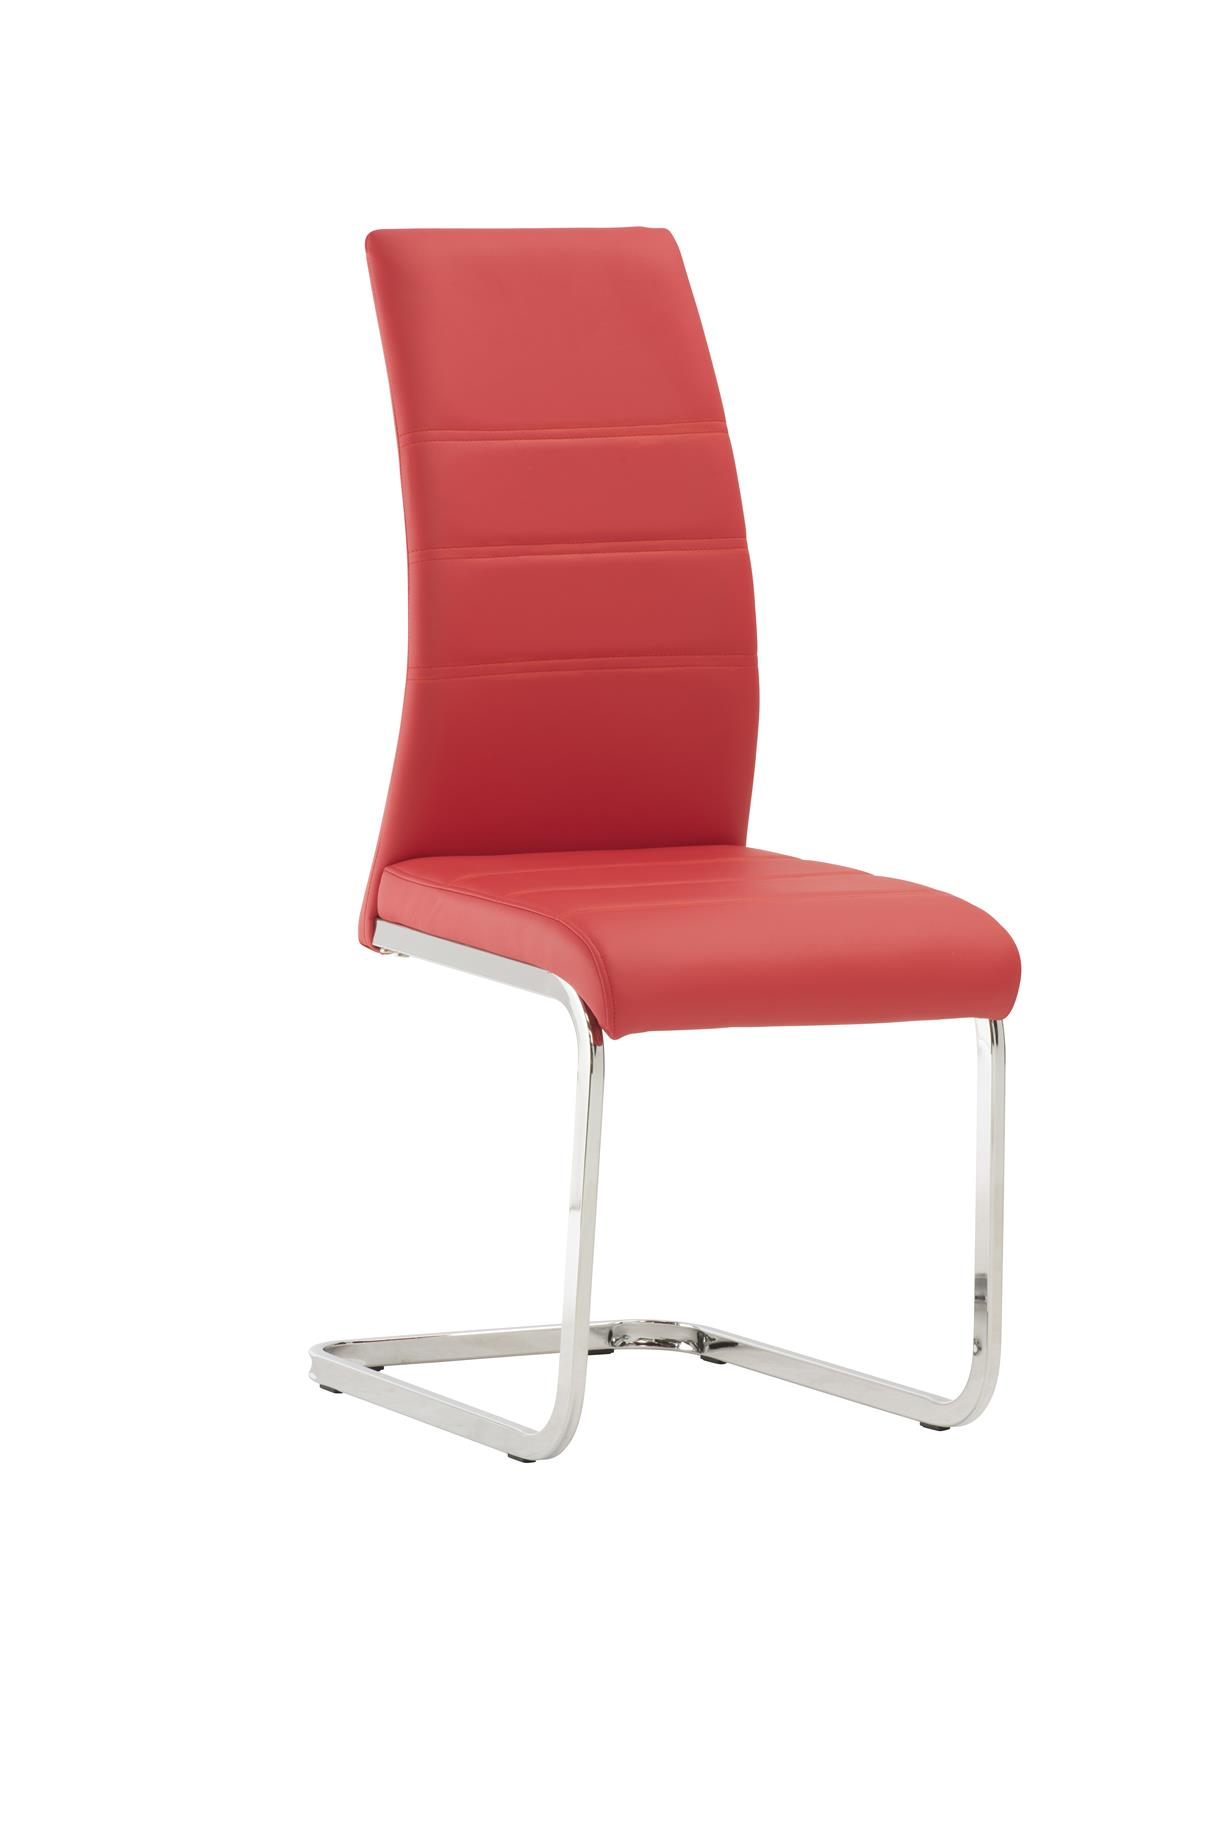 Soho Red Dining Chairs Dining Room Furniture Free Delivery